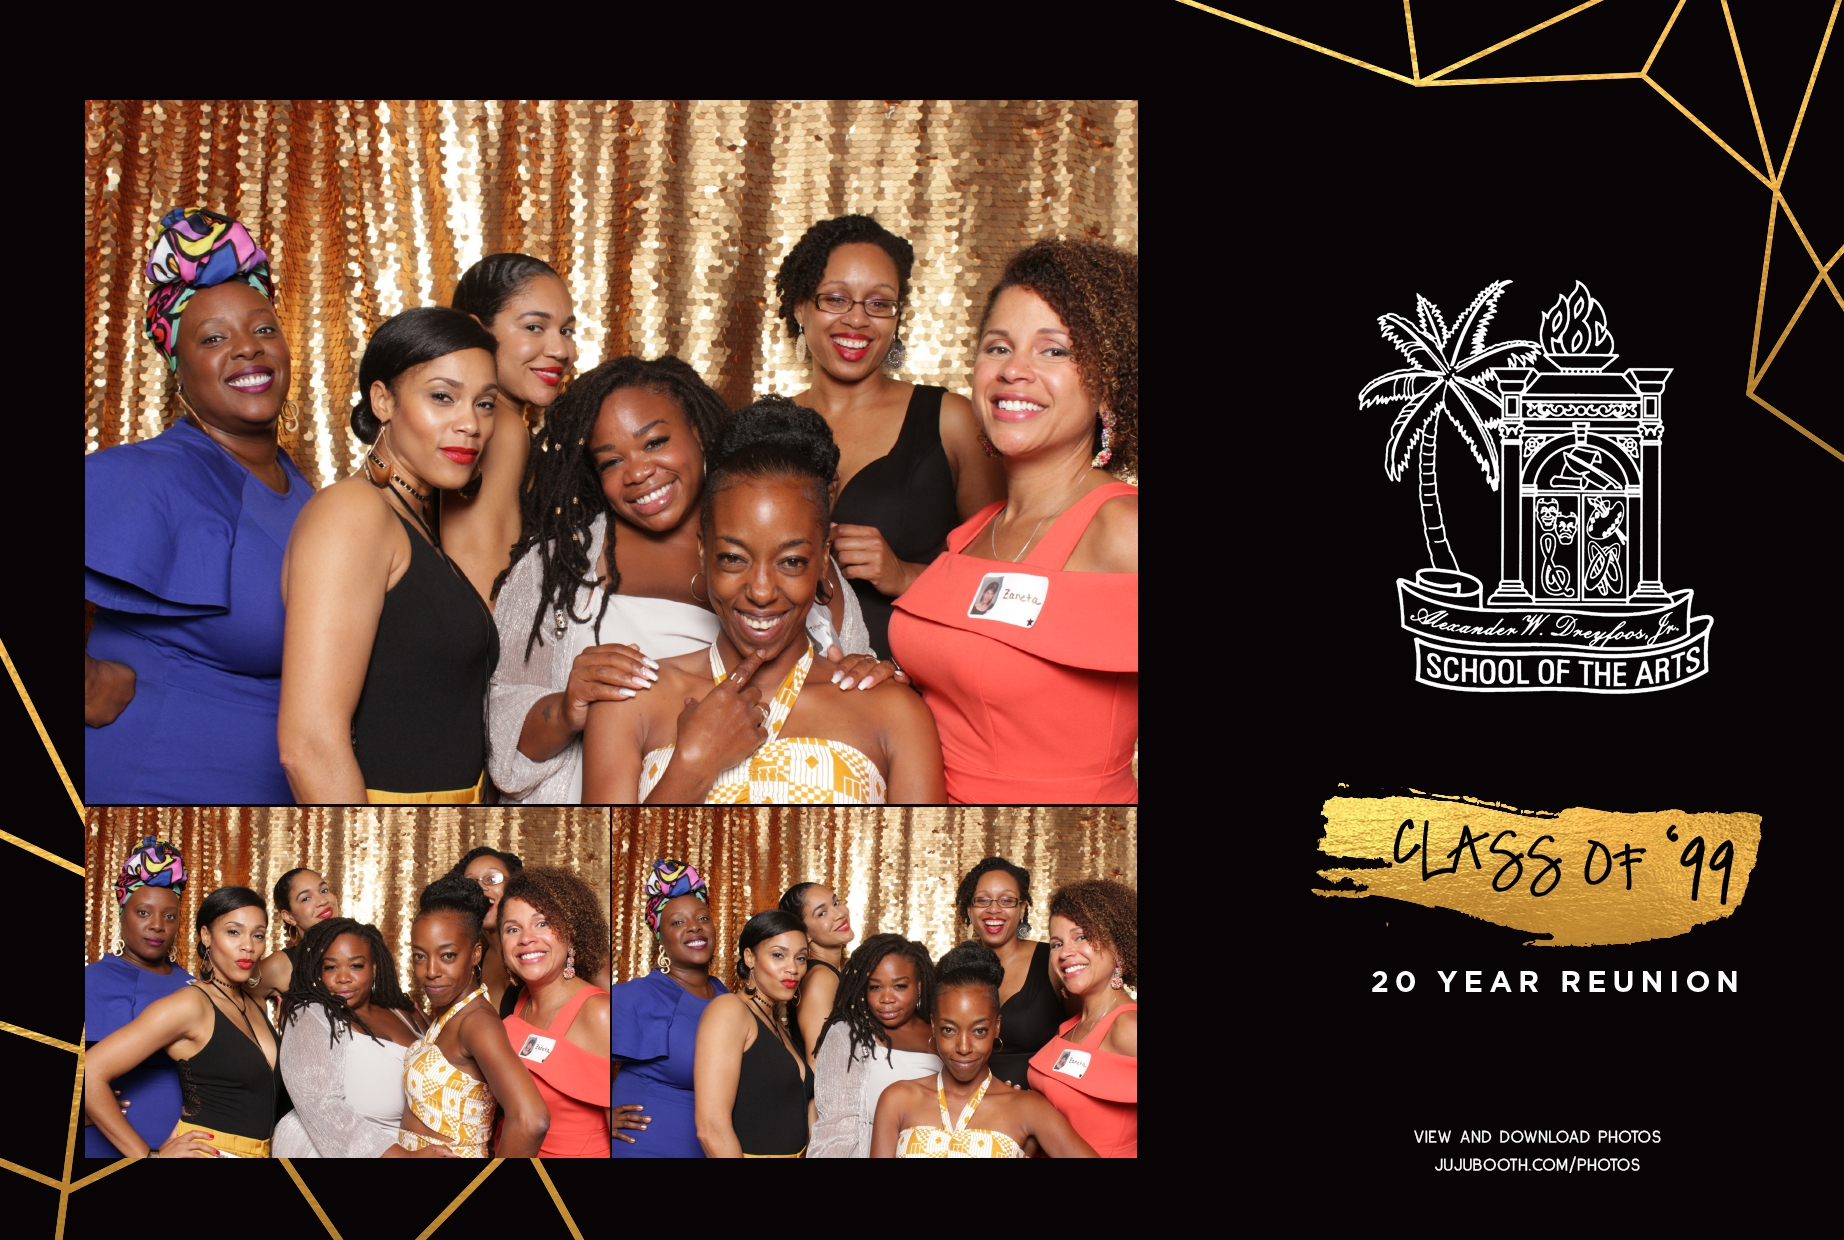 South-florida-school-reunion-photo-booth